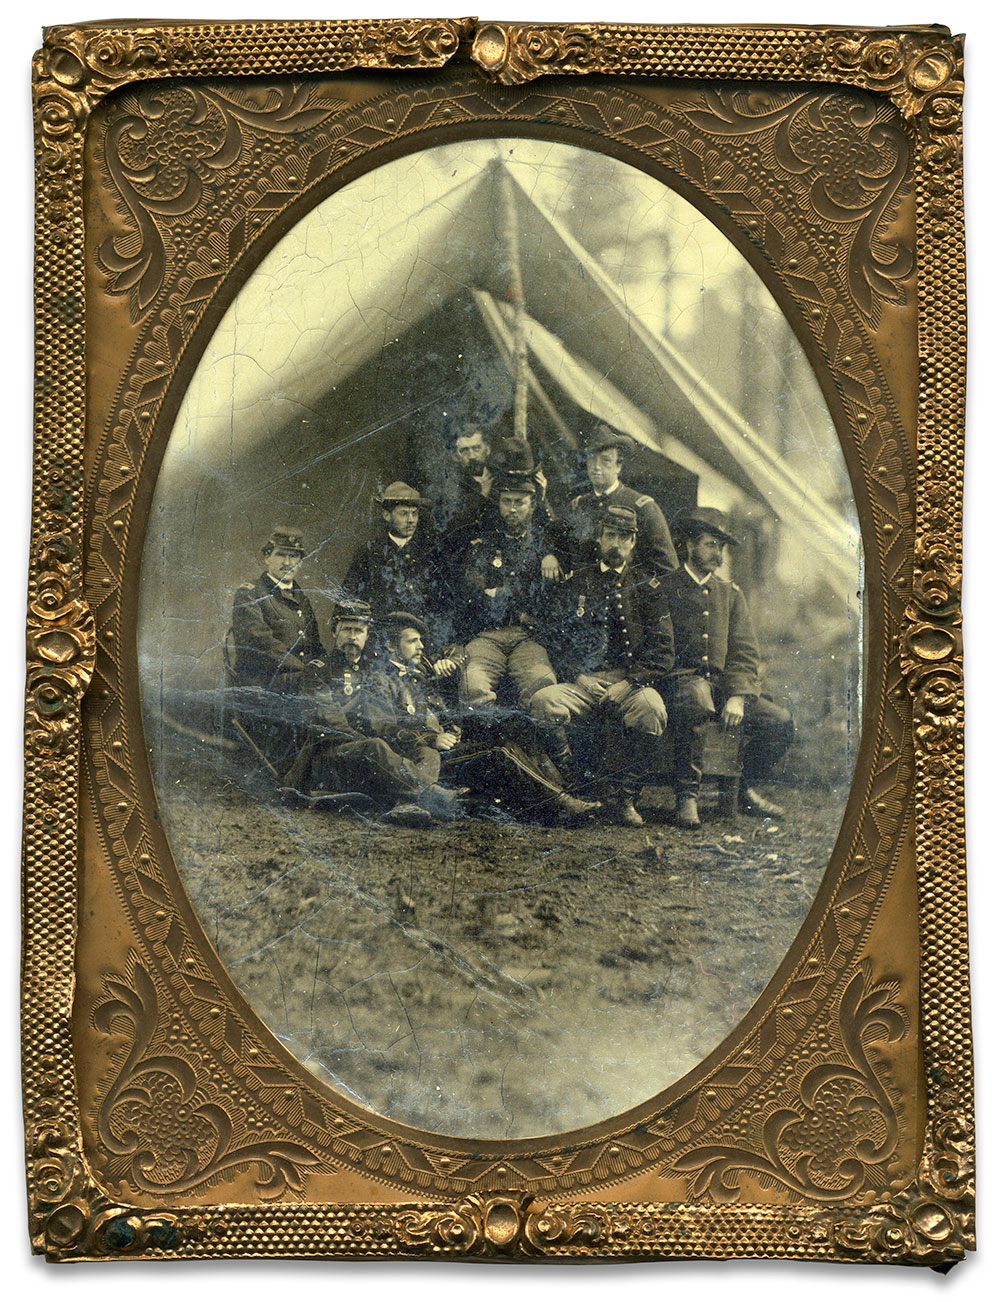 Quarter-plate tintype attributed to Timothy H. O'Sullivan.